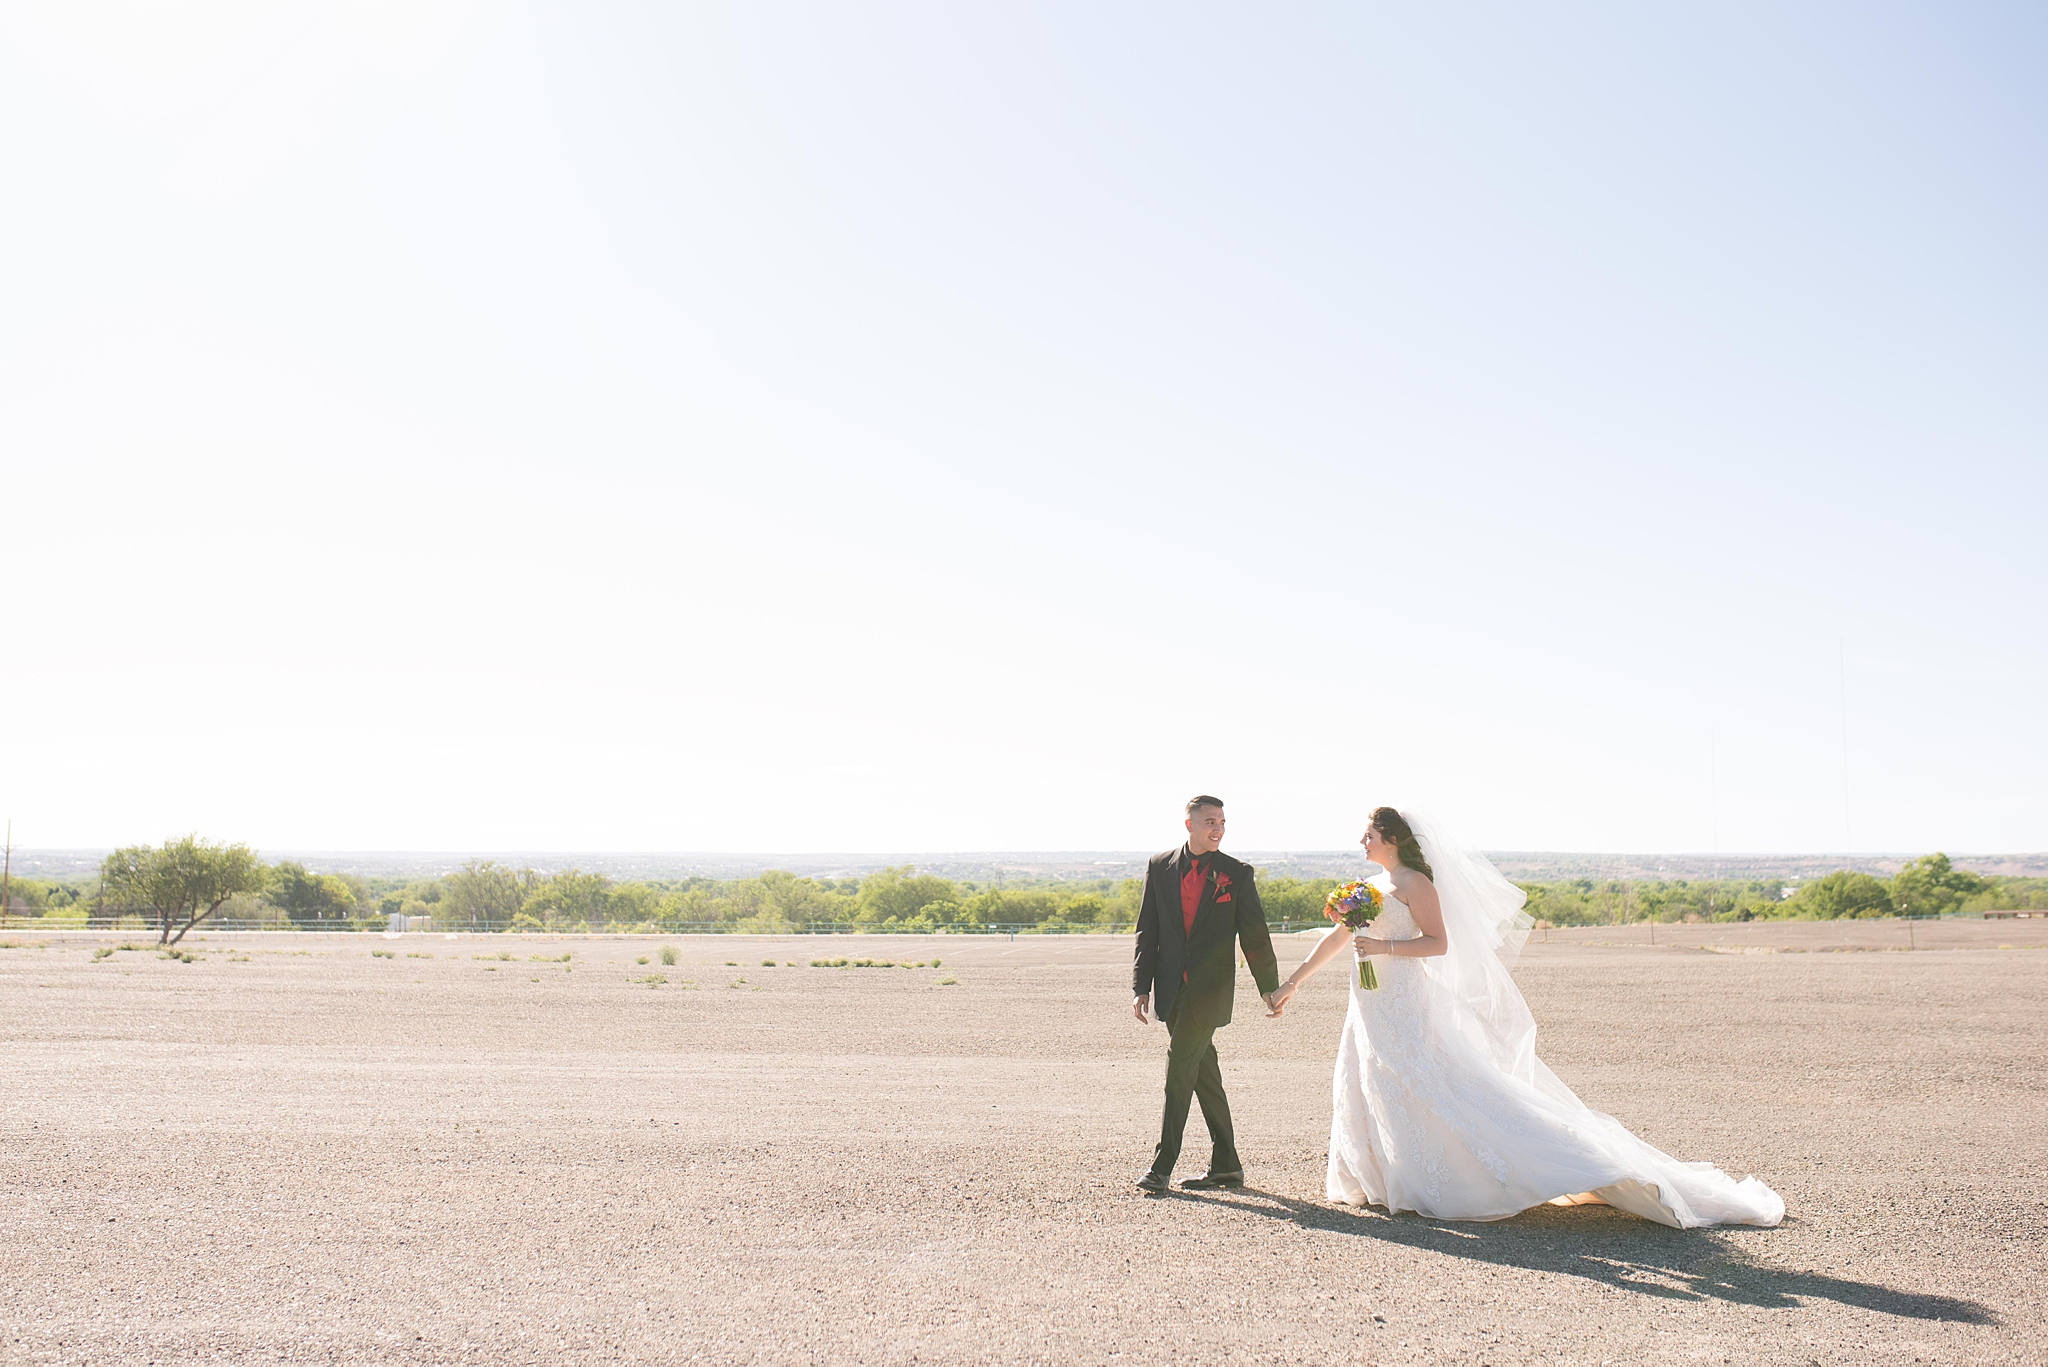 Balloon fiesta wedding with large wedding party in albuquerque new mexico.  Dress by Bridal Elegance by Darlene and jewelry by enchanted jewelers.  Albuquerque Wedding Photographer.